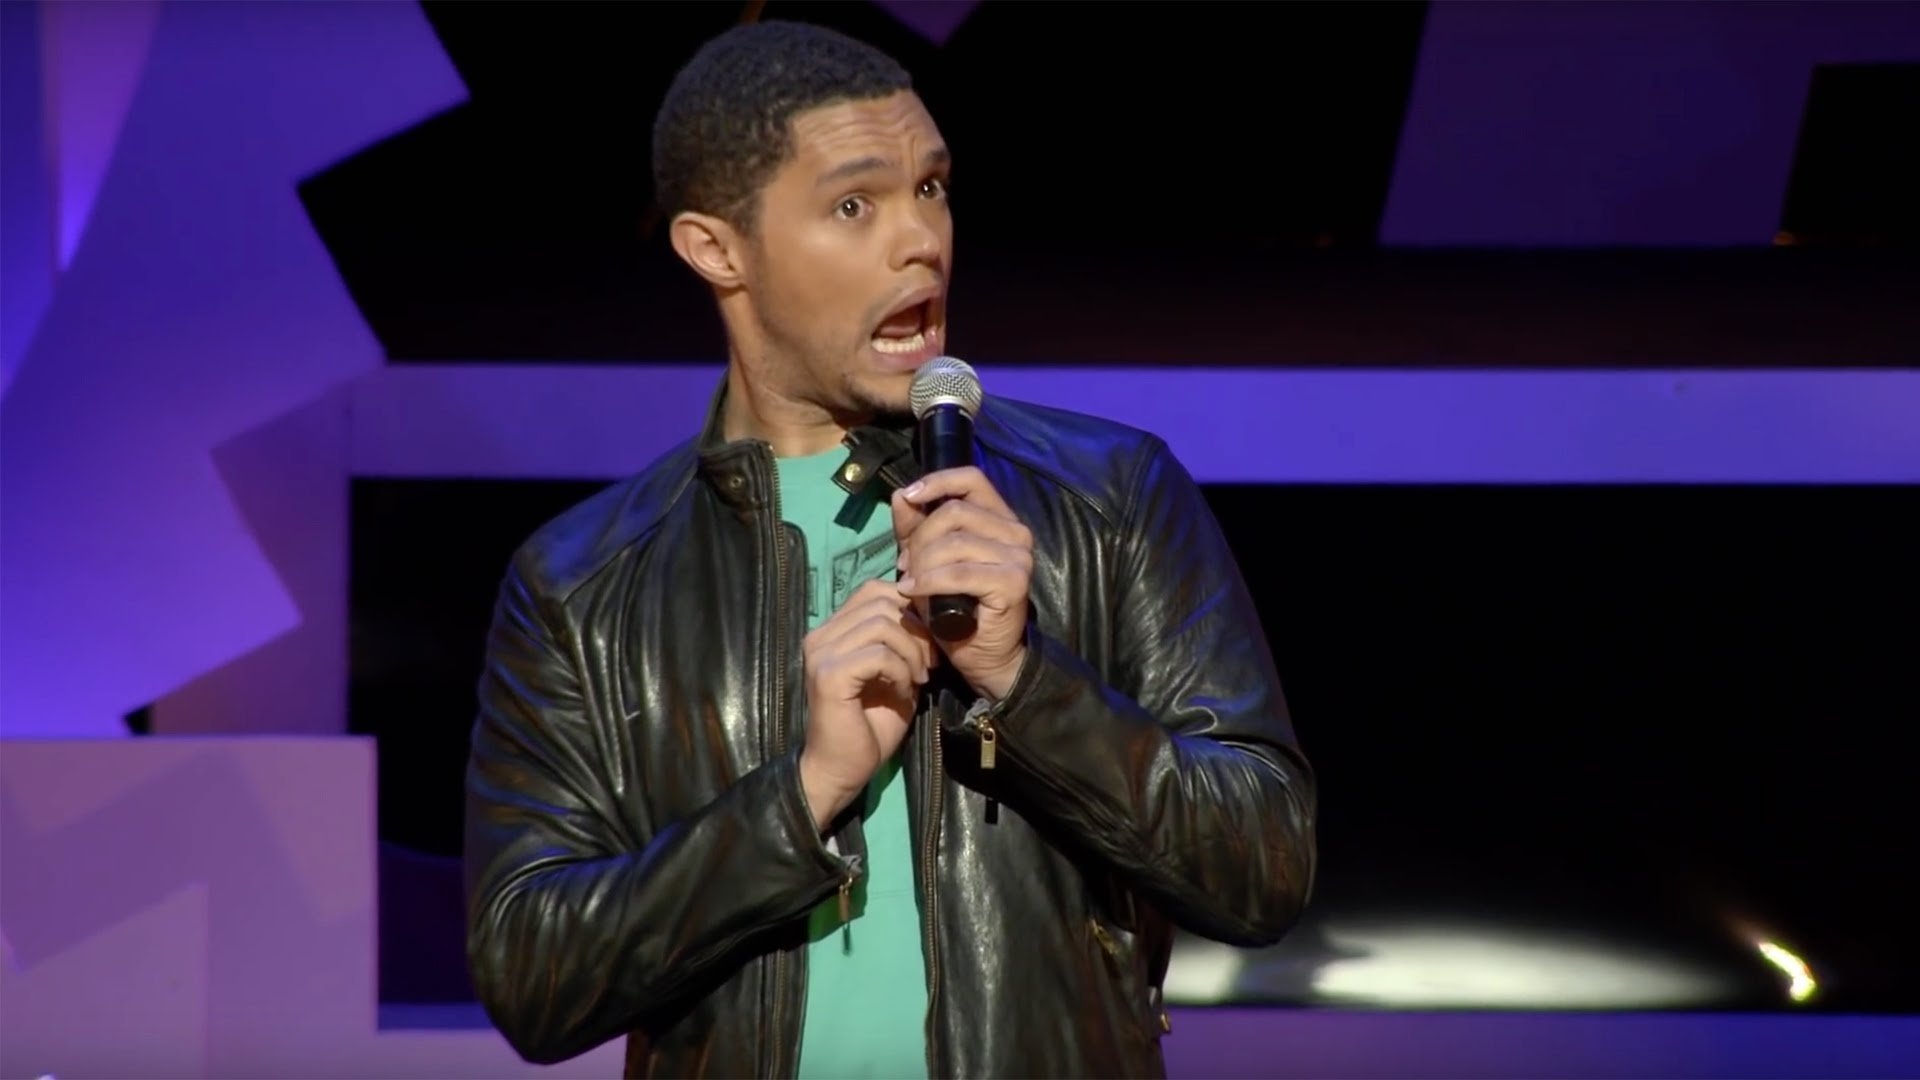 Trevor Noah Explains How Indians In South Africa Got Their